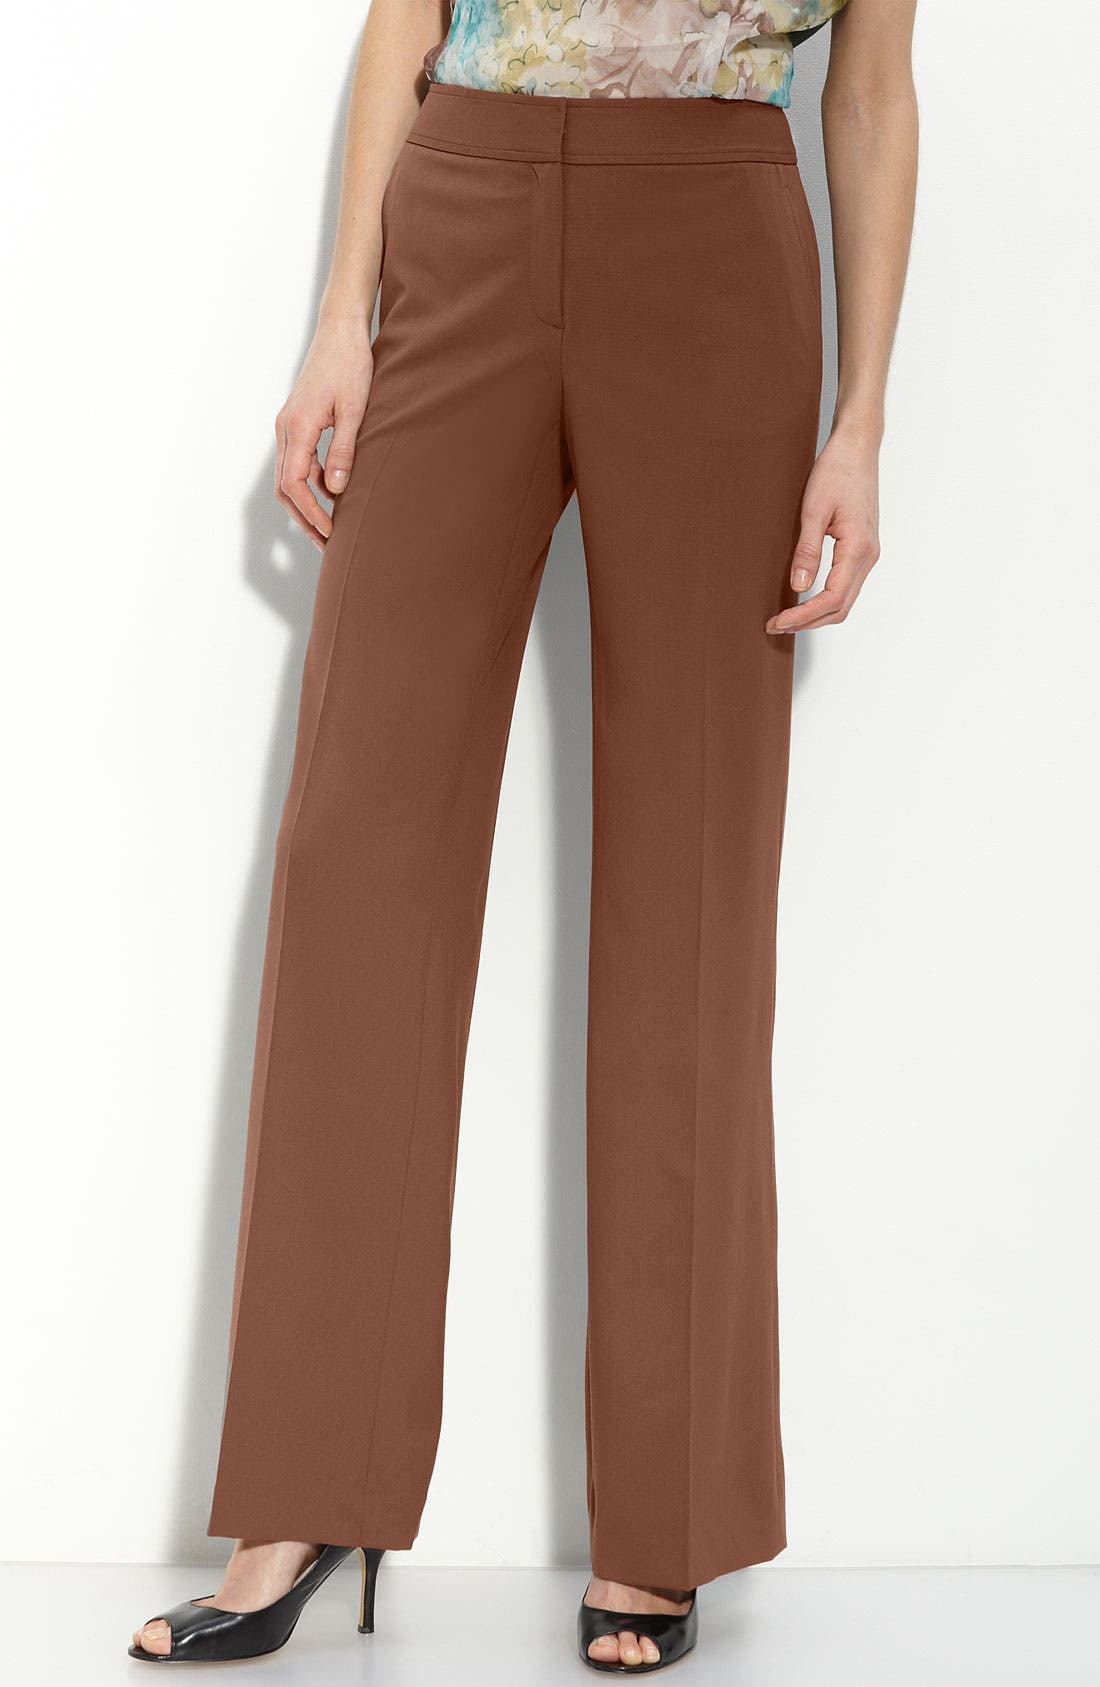 'Delancey' Stretch Wool Pants,                         Main,                         color, Coconut